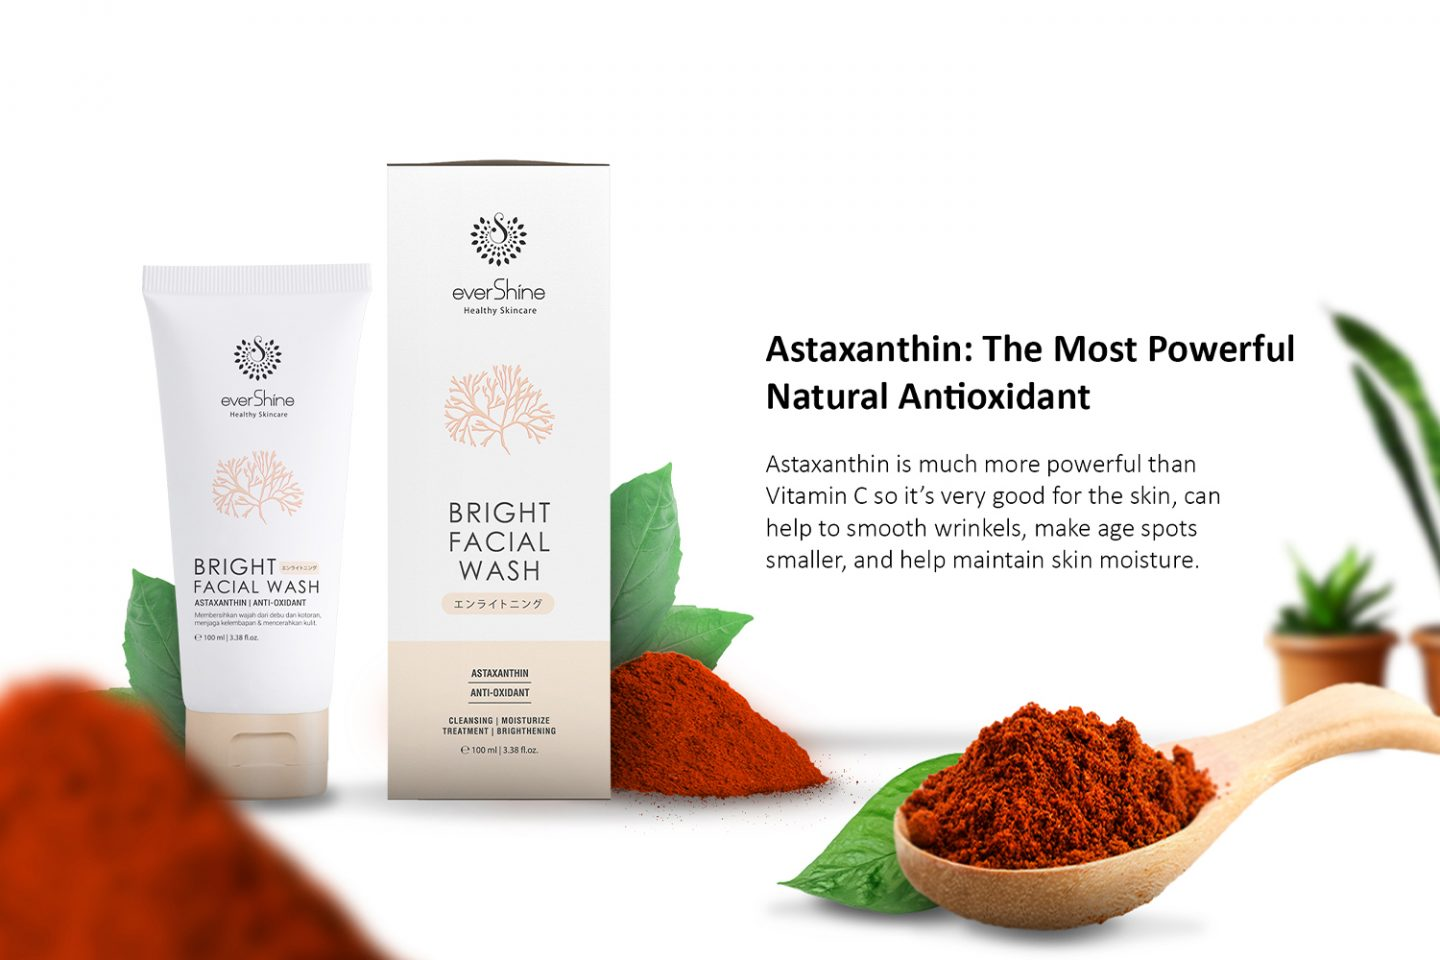 ASTAXANTHIN by evershine